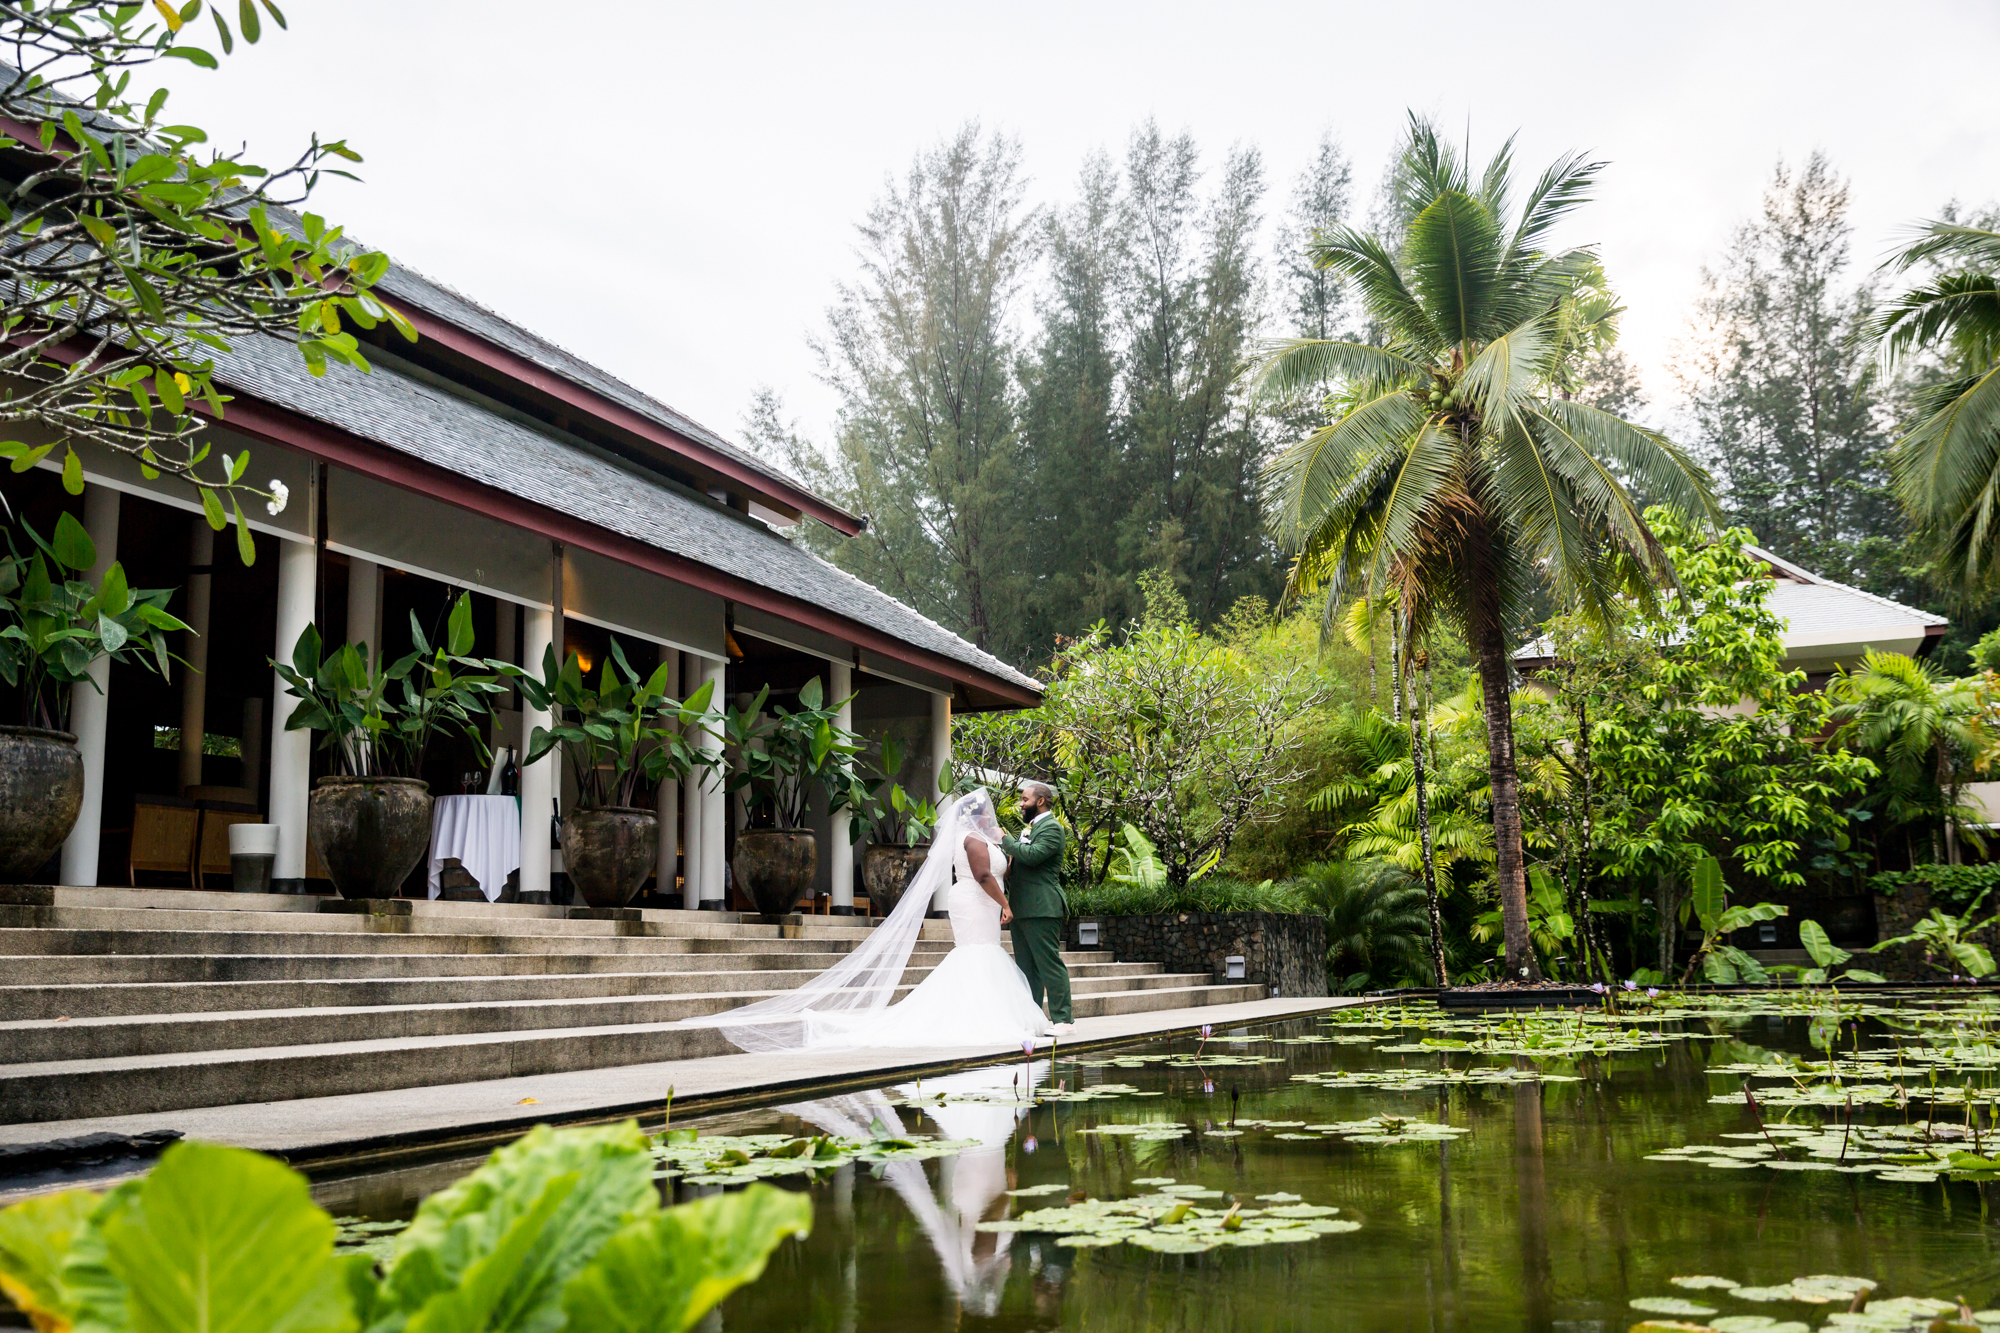 Bride and groom in front of pond for an article on destination wedding photography tips